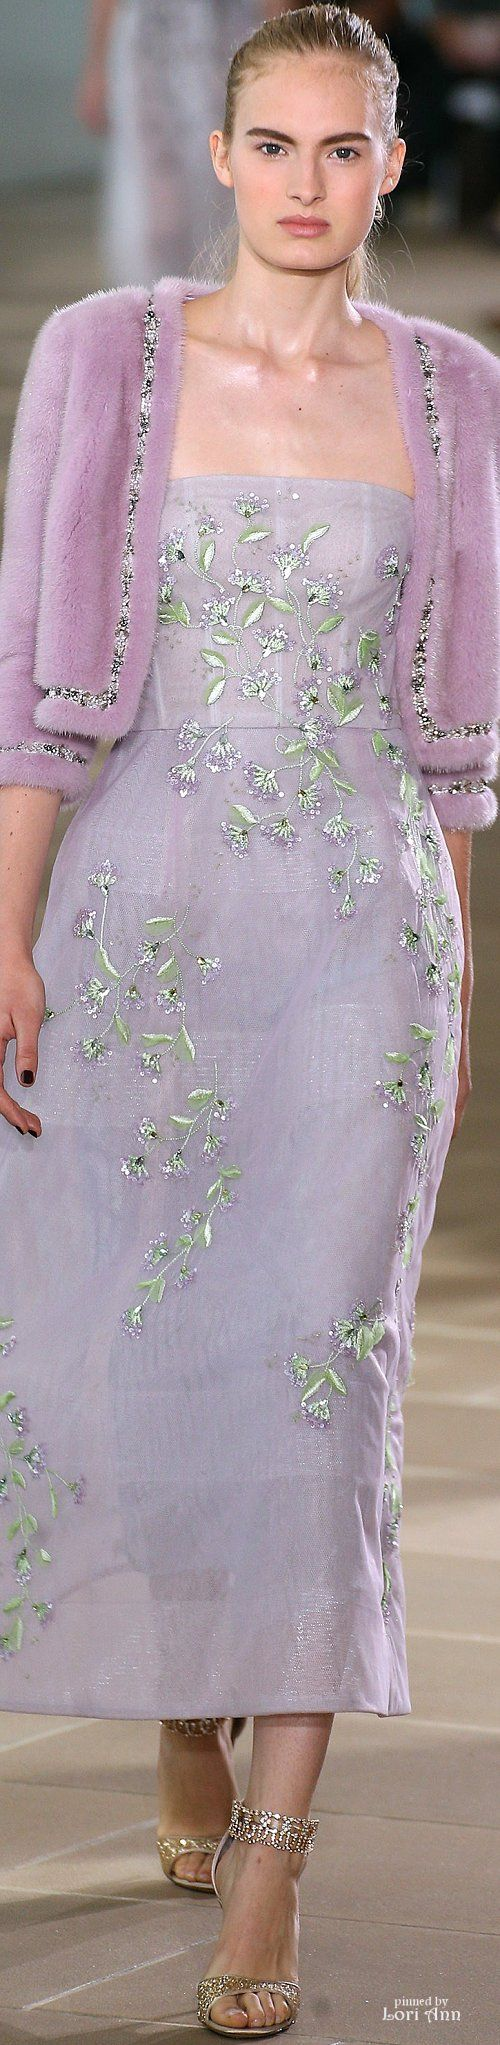 Monique Lhuillier Spring 2017 RTW                                                                                                                                                                                 More